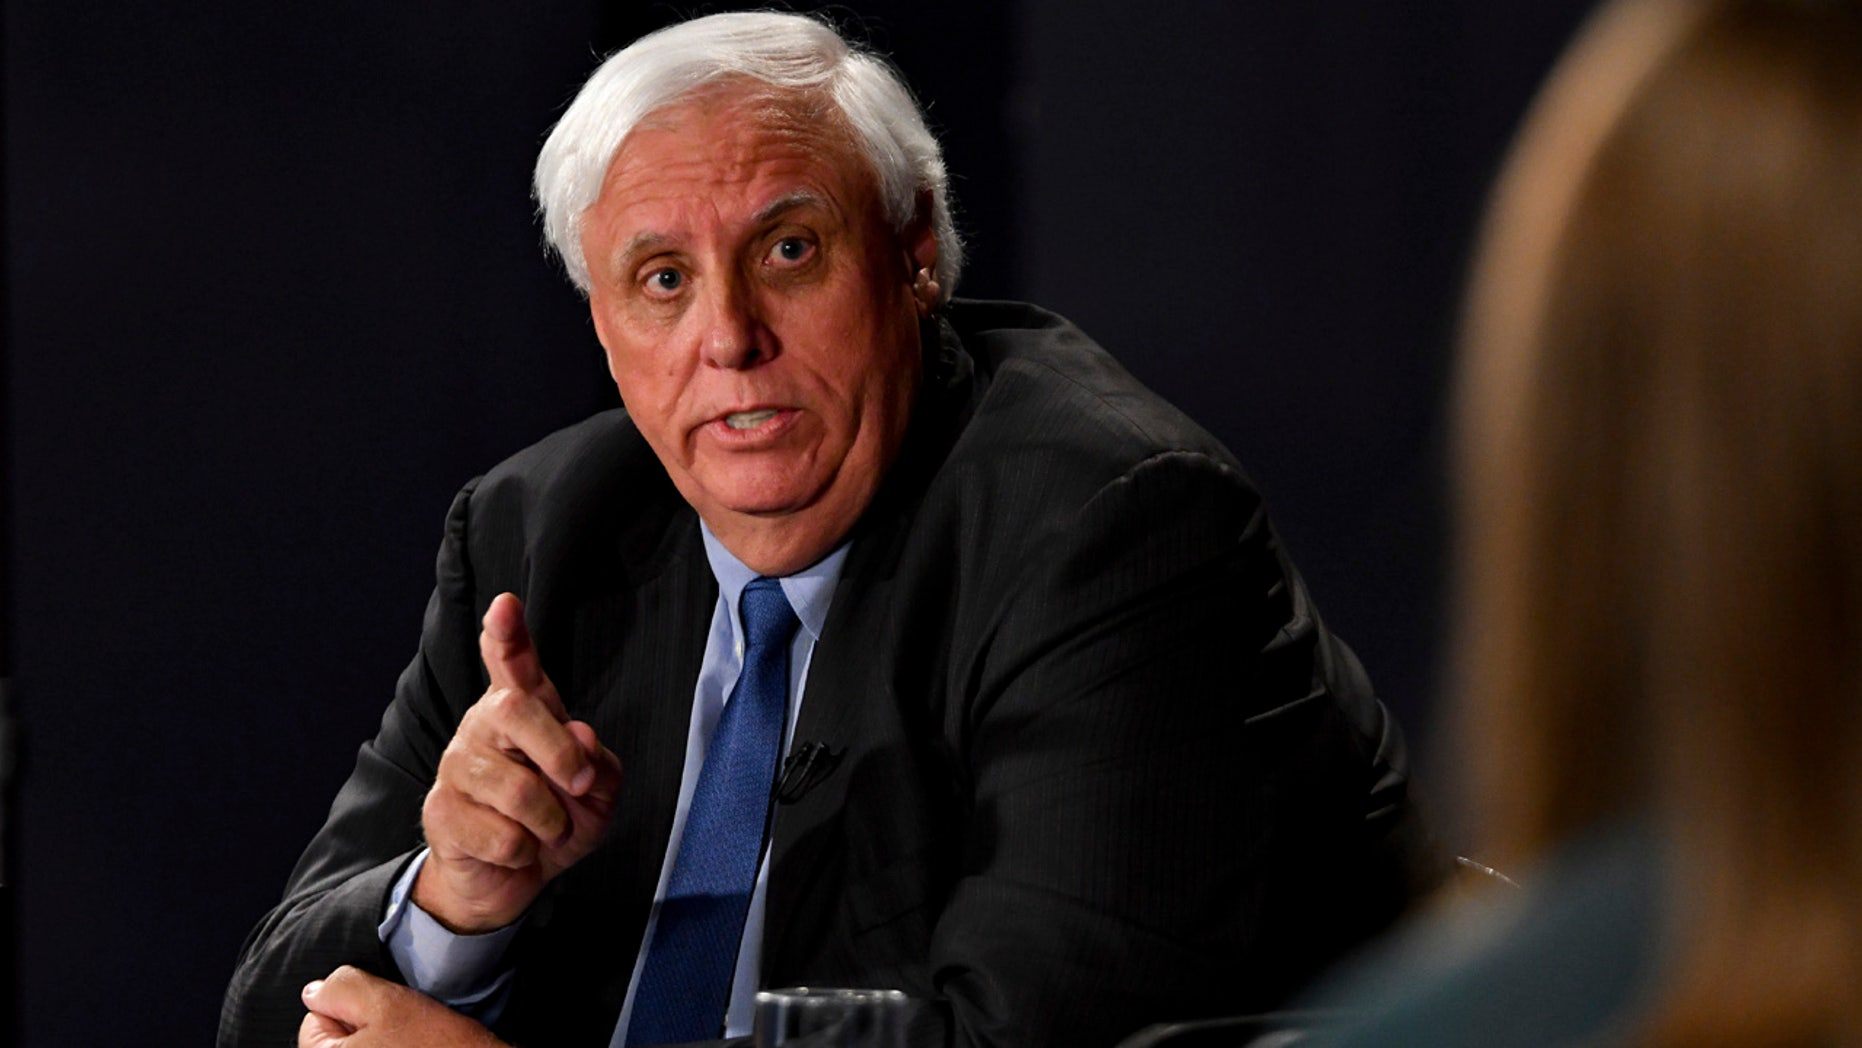 Democratic candidate Jim Justice speaks during a gubernatorial debate against Senate Majority Leader Bill Cole R-W.Va., Tuesday, Oct. 4, 2016 at the Clay Center in Charleston W.Va. (AP Photo/Tyler Evert)